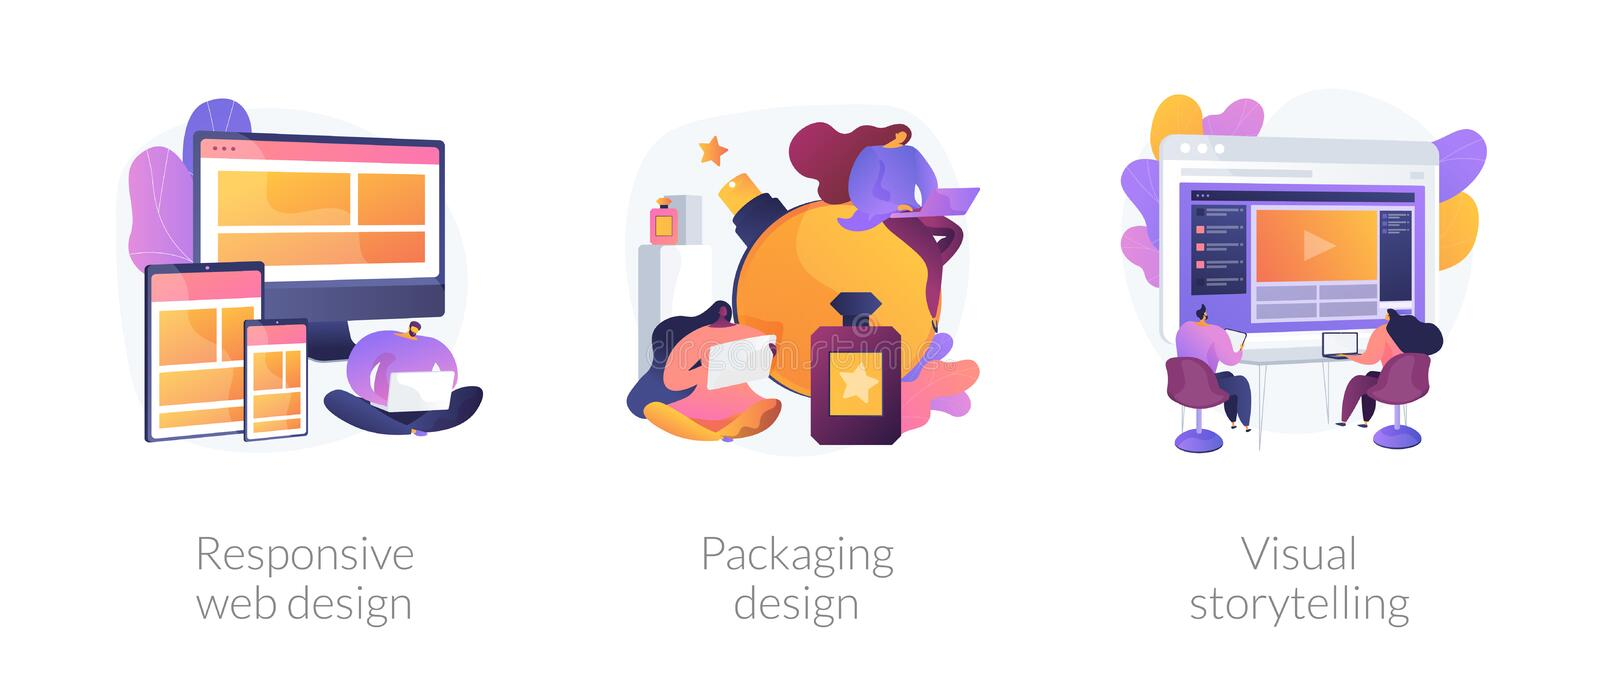 Design services vector concept metaphors. Cross platform development, brand development, content marketing icons set. Responsive web design, packaging design vector illustration